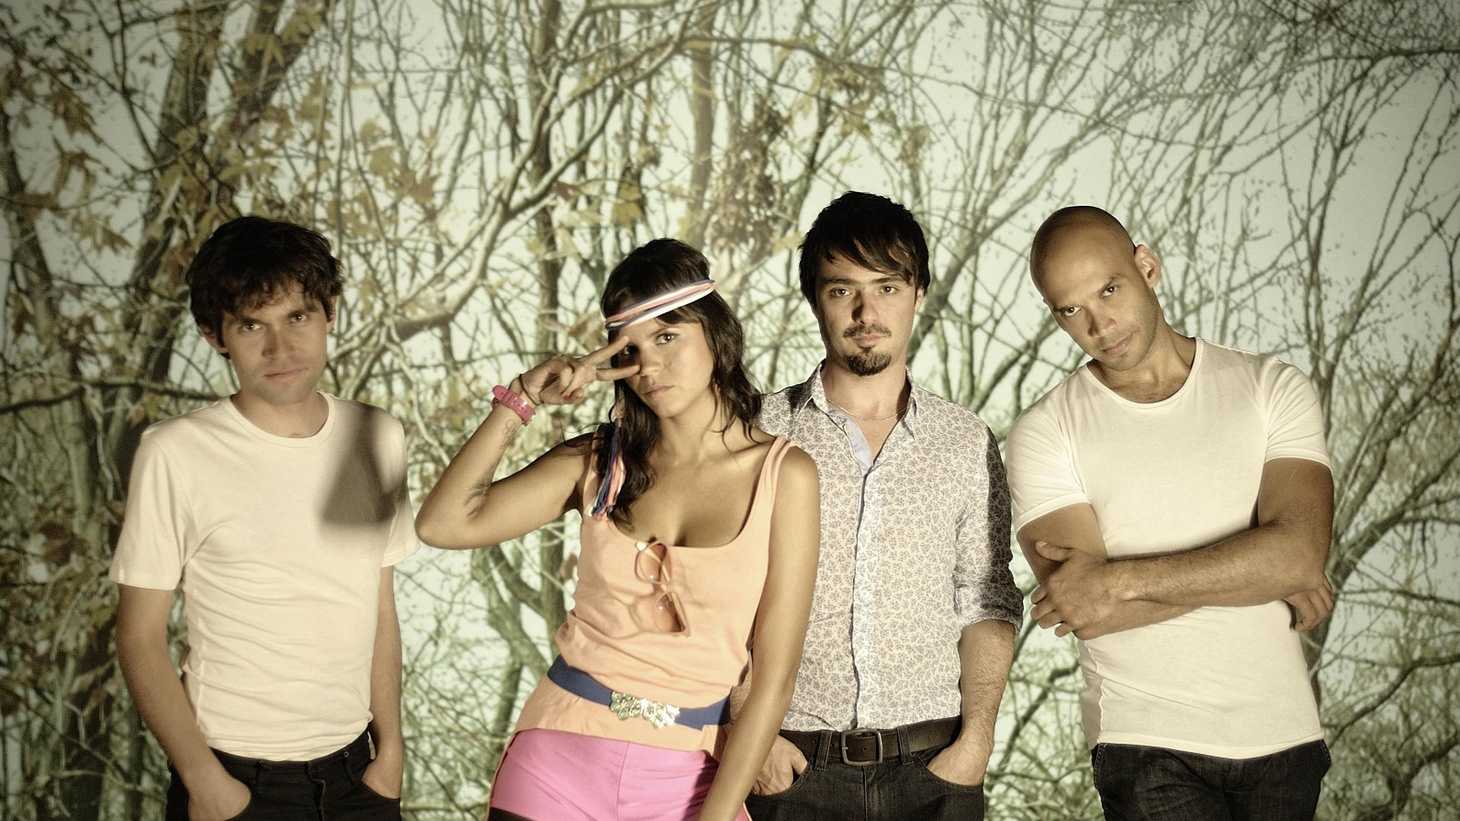 Many musicians say that the second album is harder to write than the first, especially when a debut is successful: There's more pressure, higher stakes, fewer ways to surprise and less time to work. The Colombian band  Bomba Estéreo  faced down that imposing empty canvas when it entered the studio to record a followup to 2009's hit Blow Up .